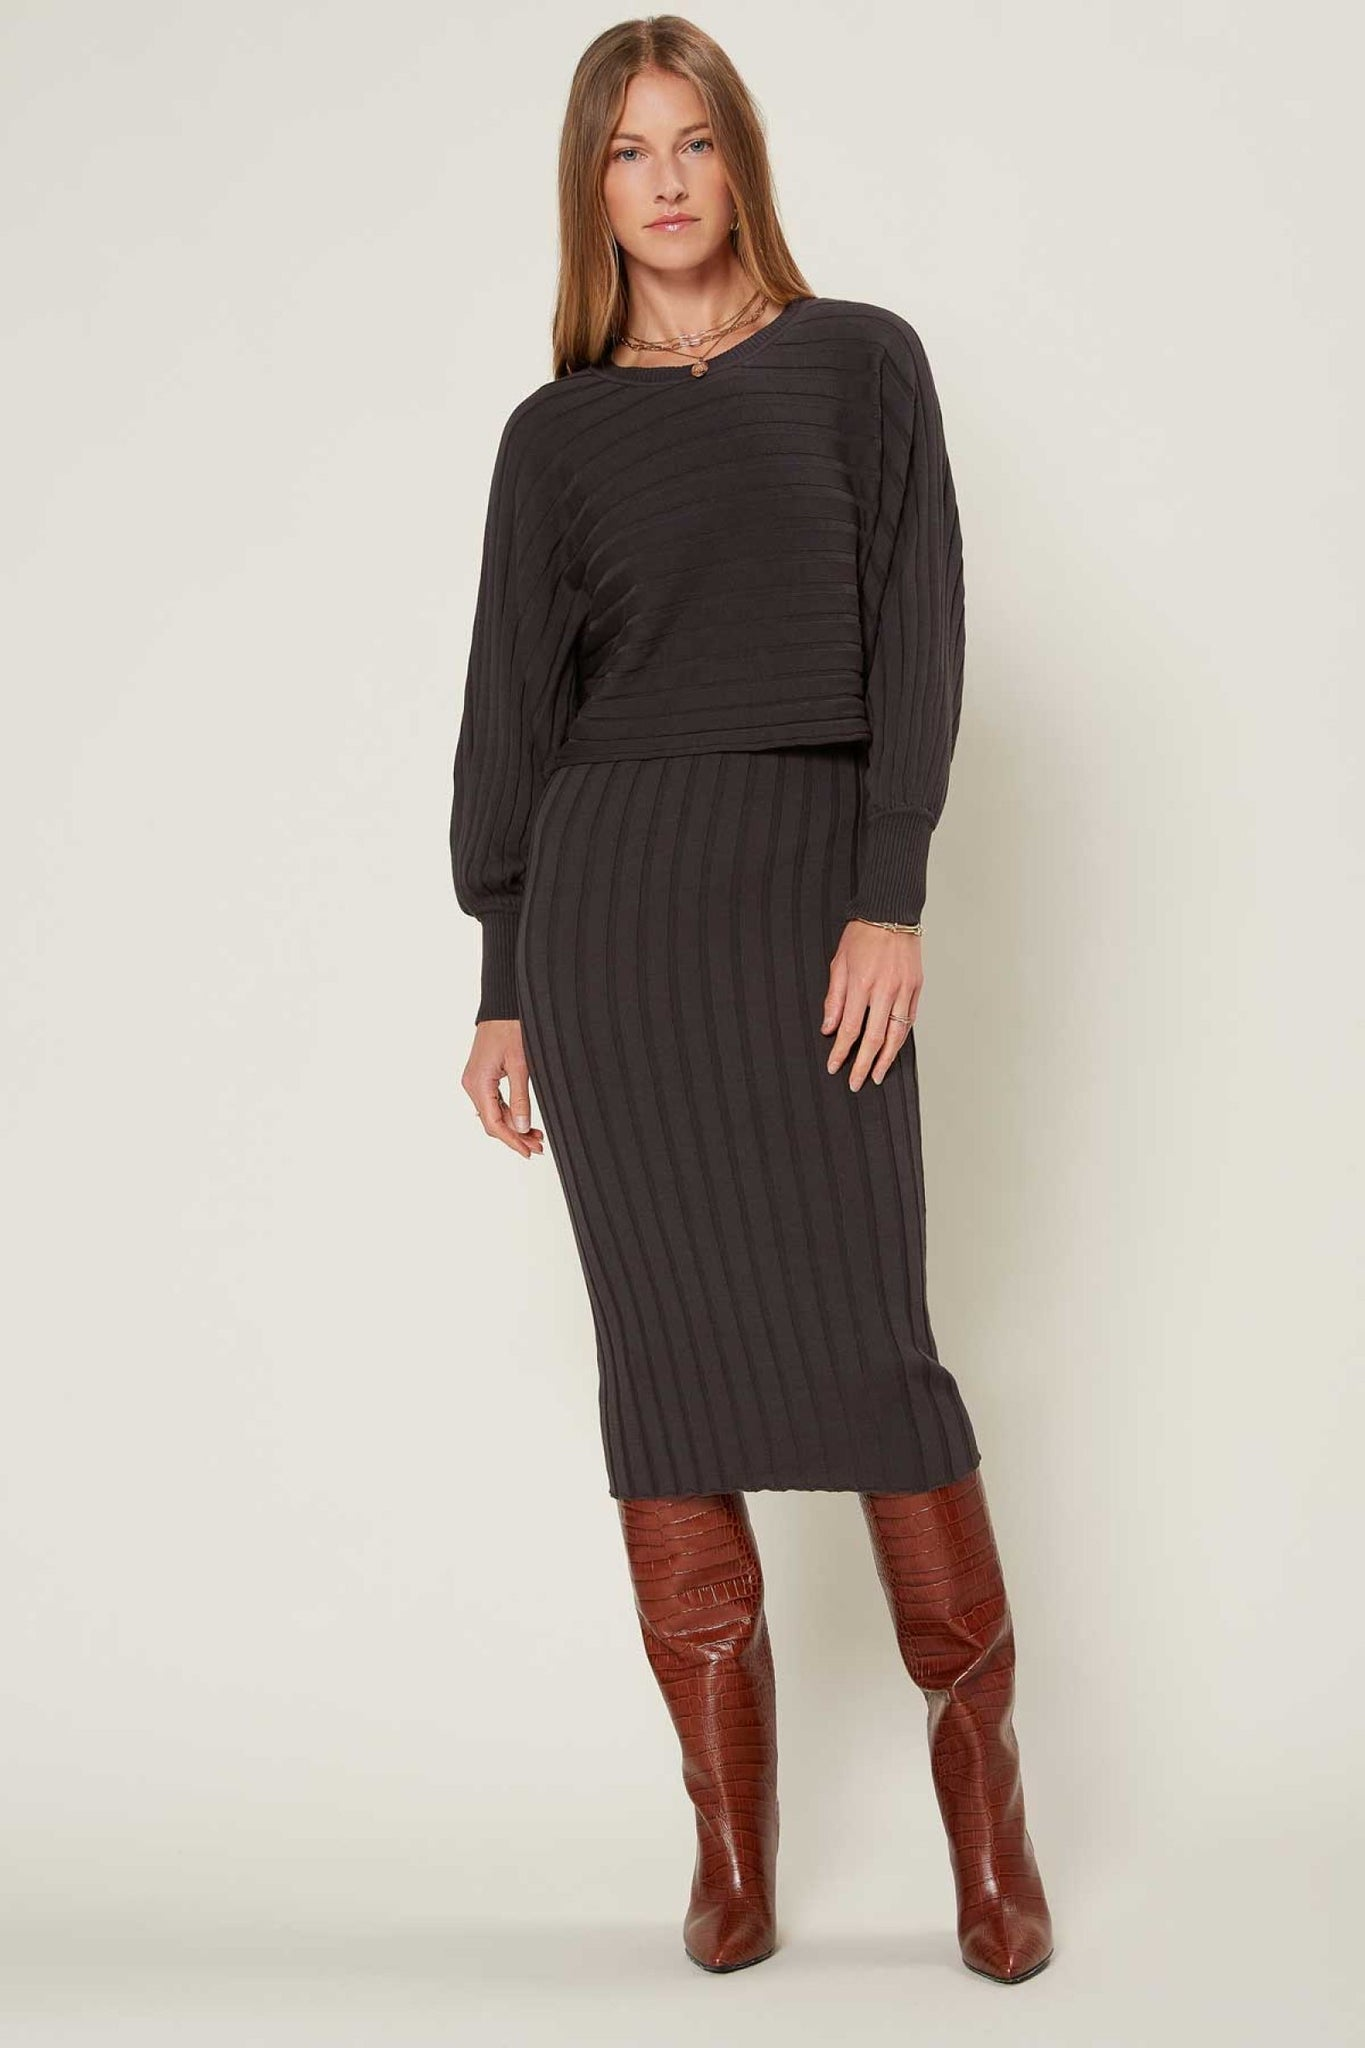 2fer Sweater Dress and Top Combo